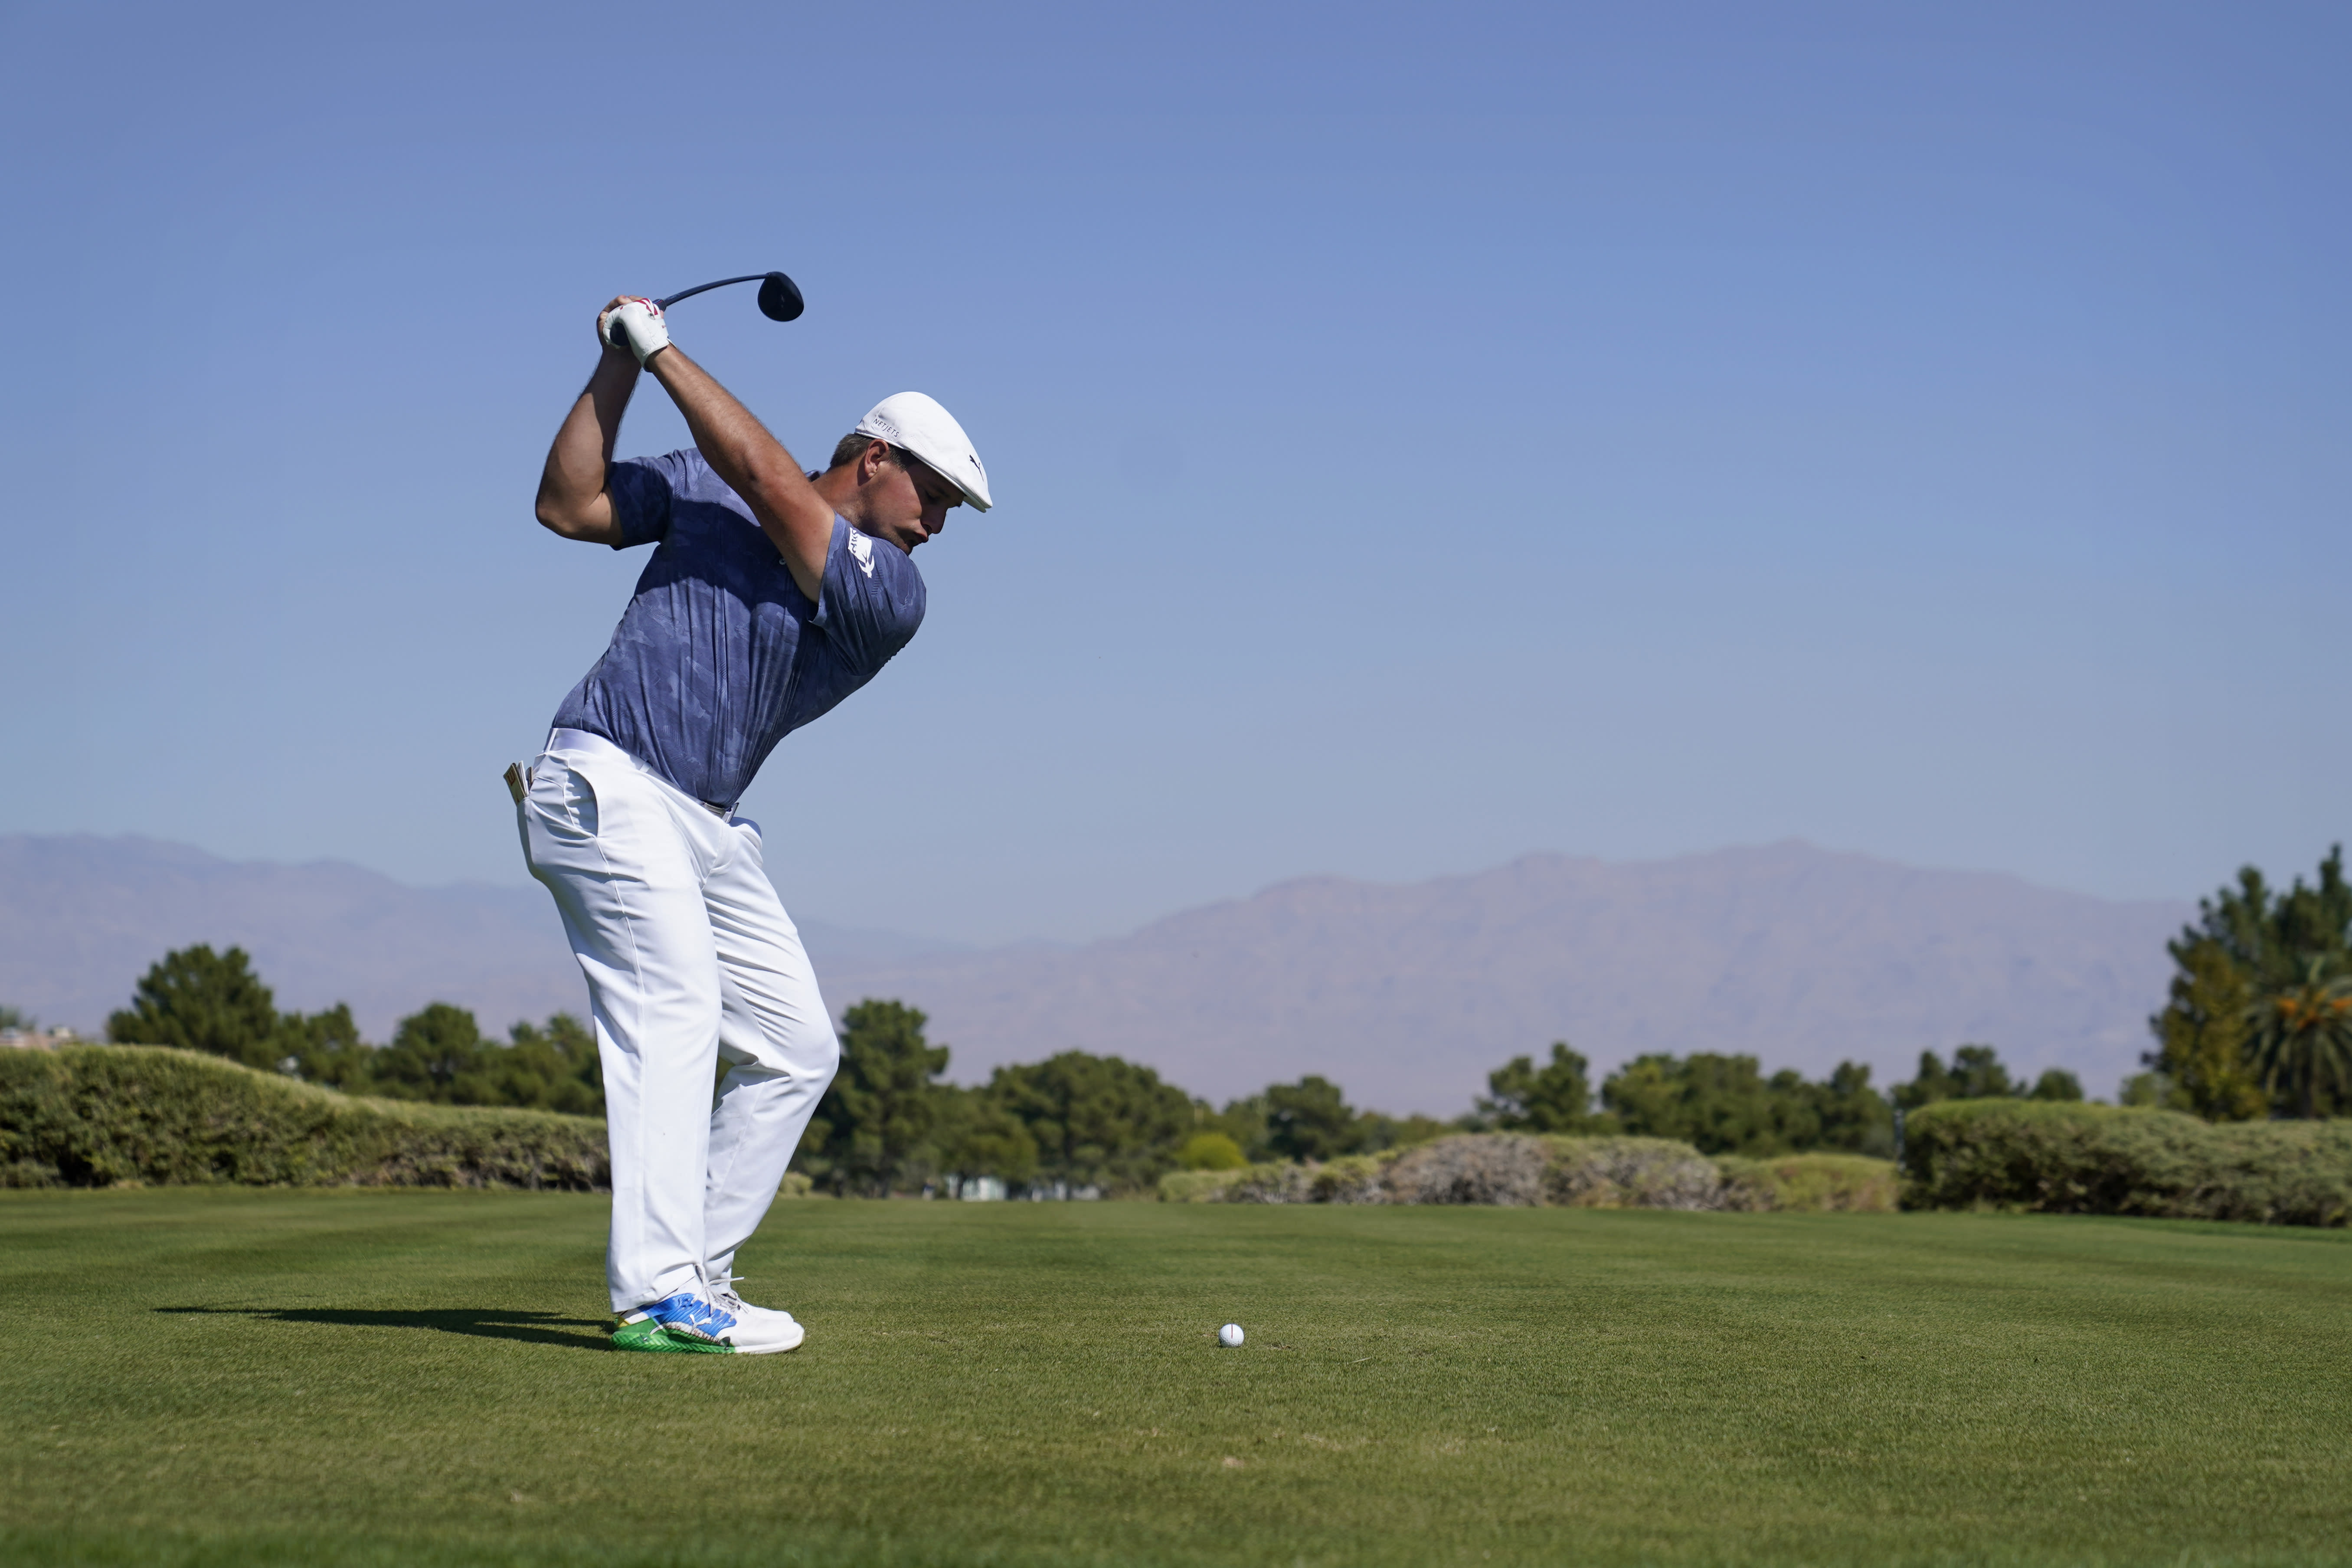 Bryson DeChambeau hits off the 10th tee during the final round of Shriners Hospitals for Children Open golf tournament Sunday, Oct. 11, 2020, in Las Vegas. (AP Photo/John Locher)